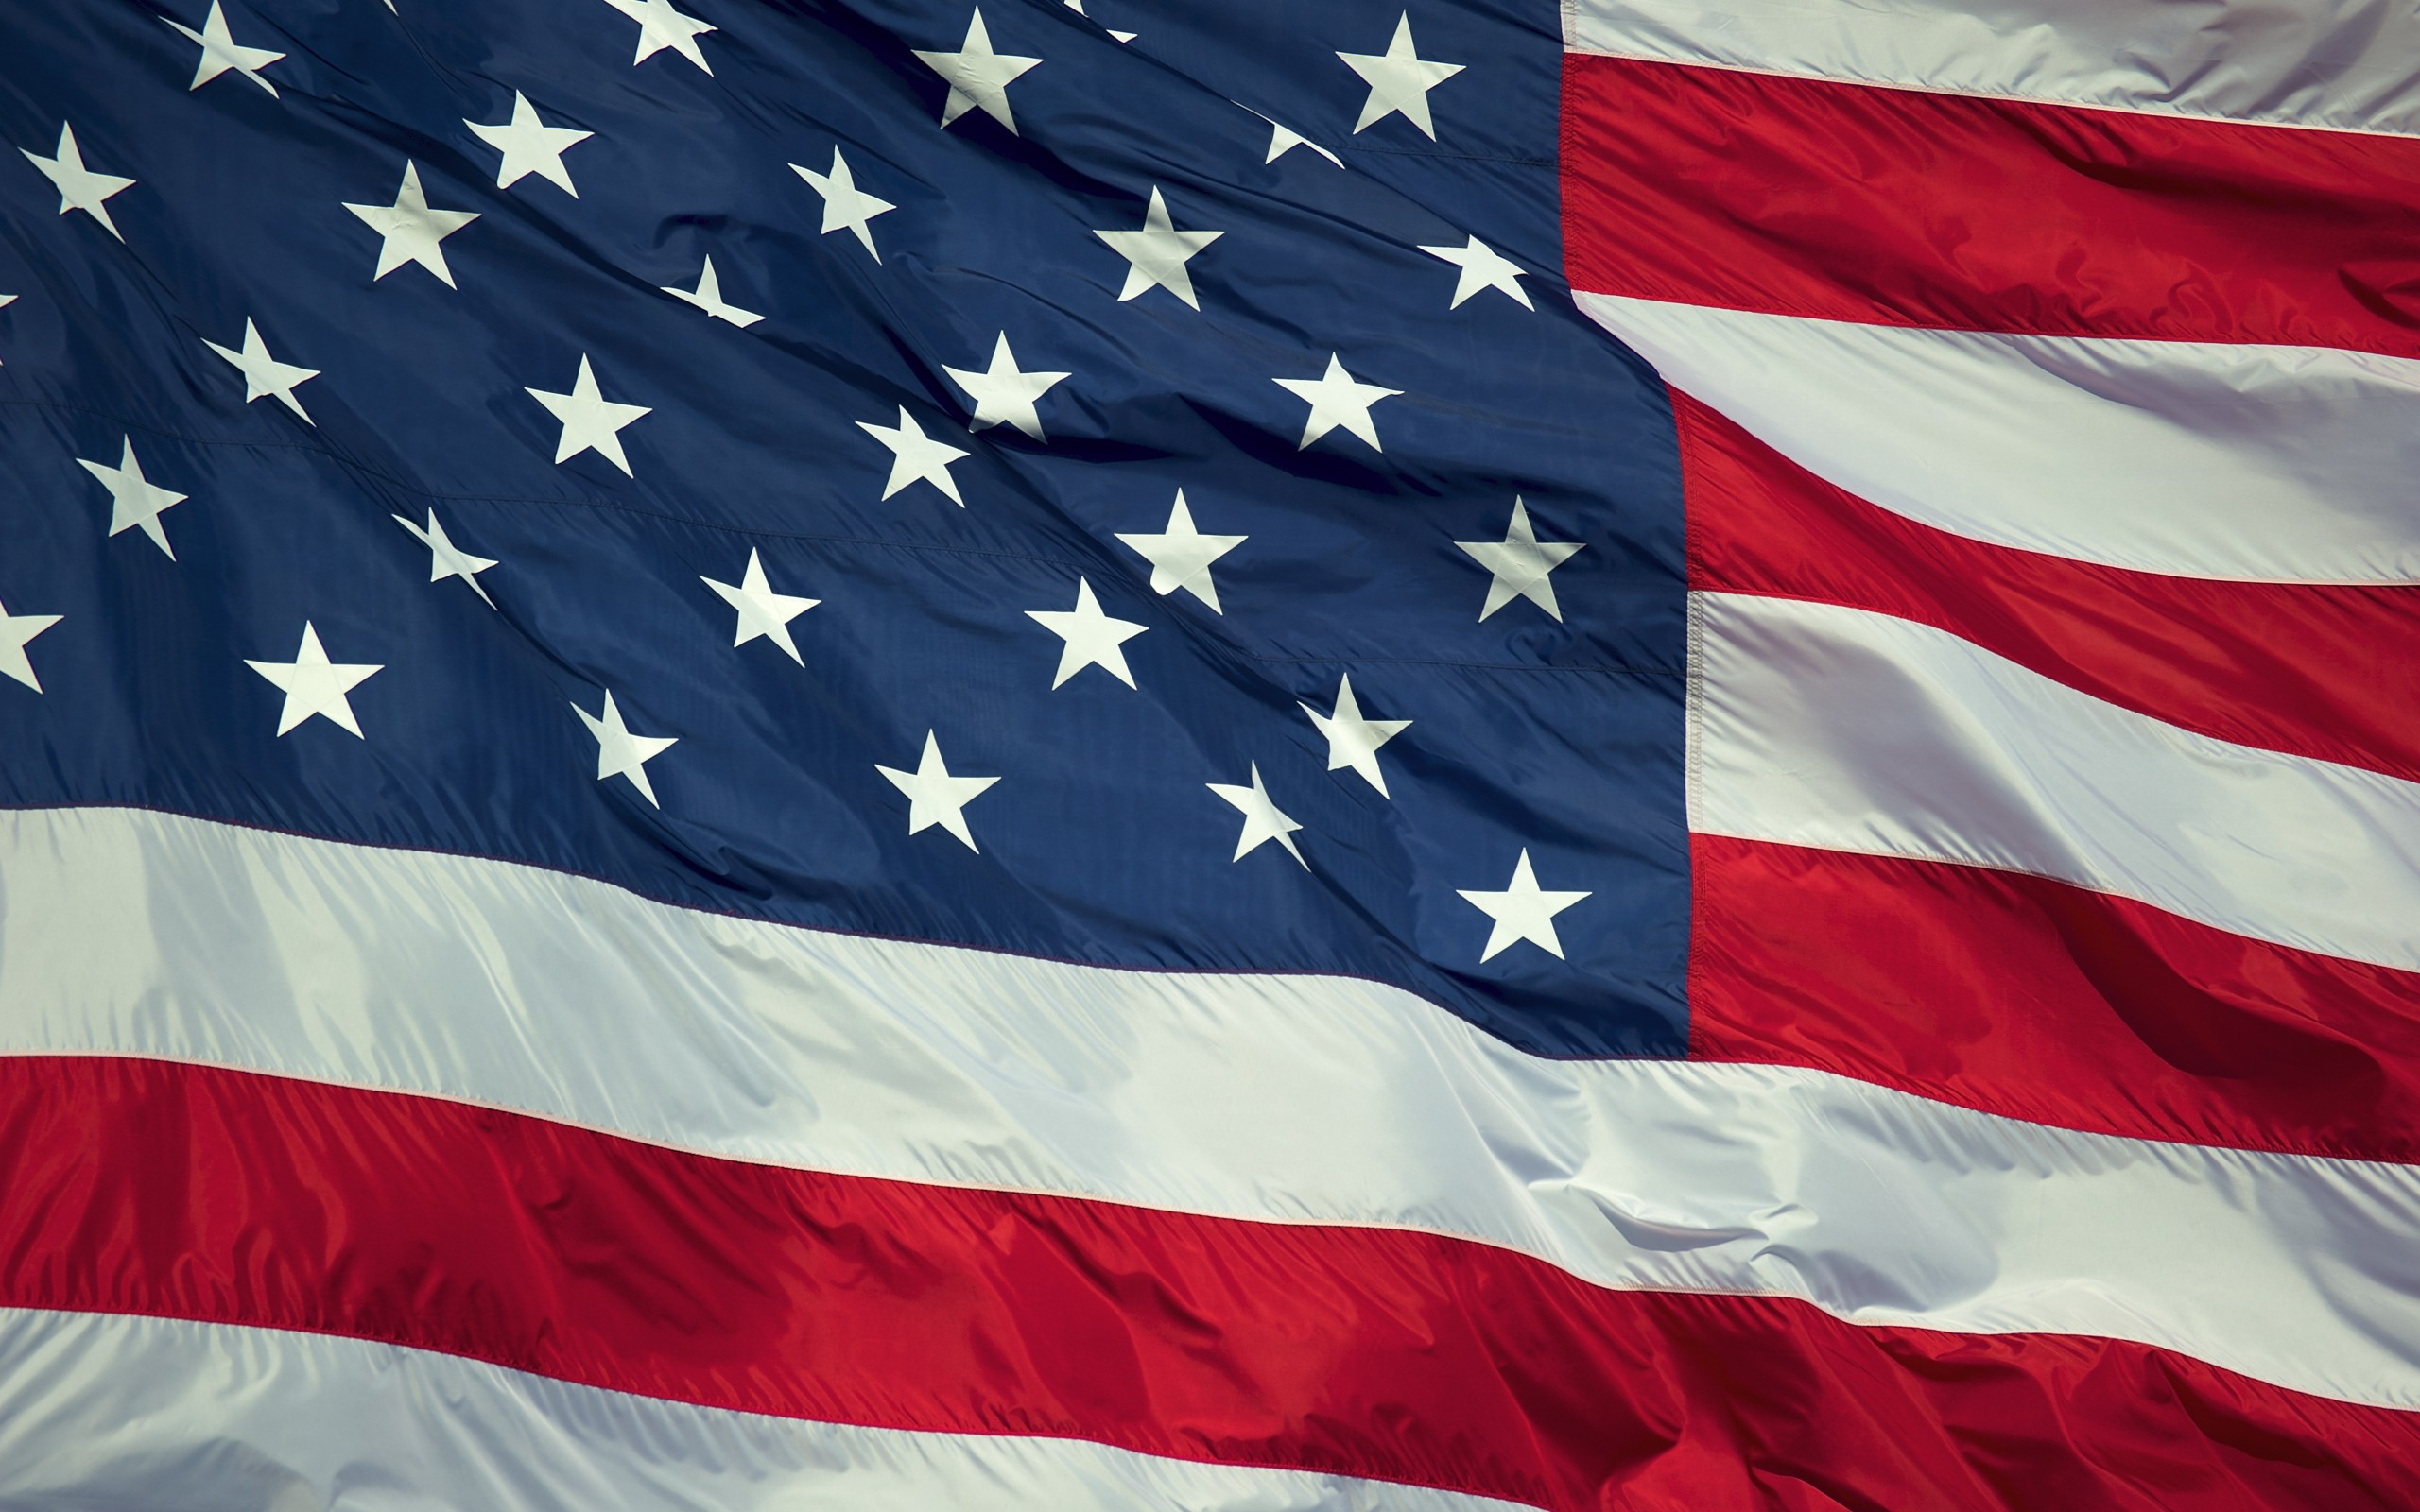 desktop images of american flag